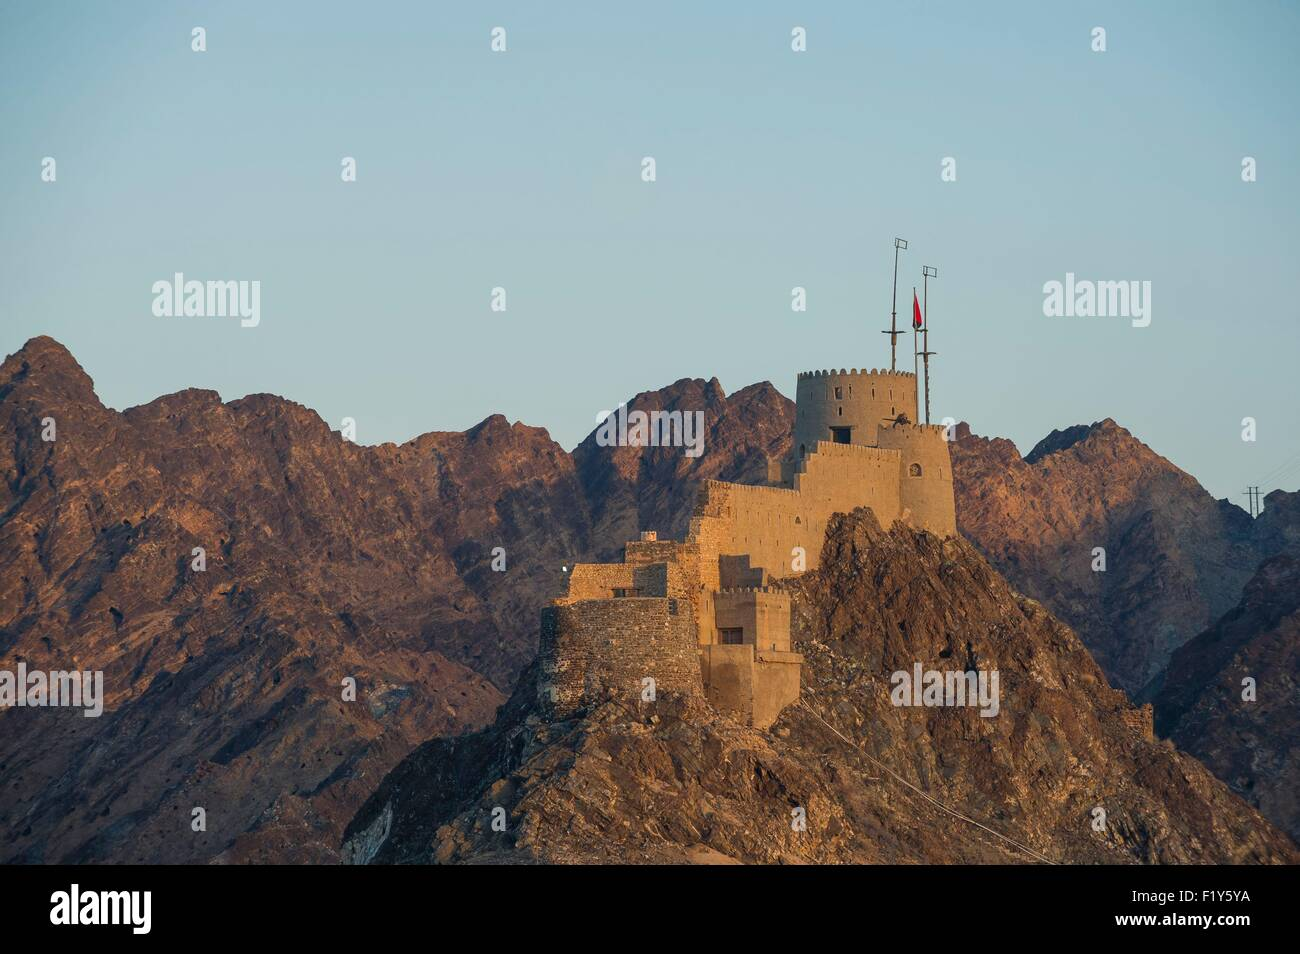 Oman, Muscat, Muttrah, the fort dated 17th century - Stock Image